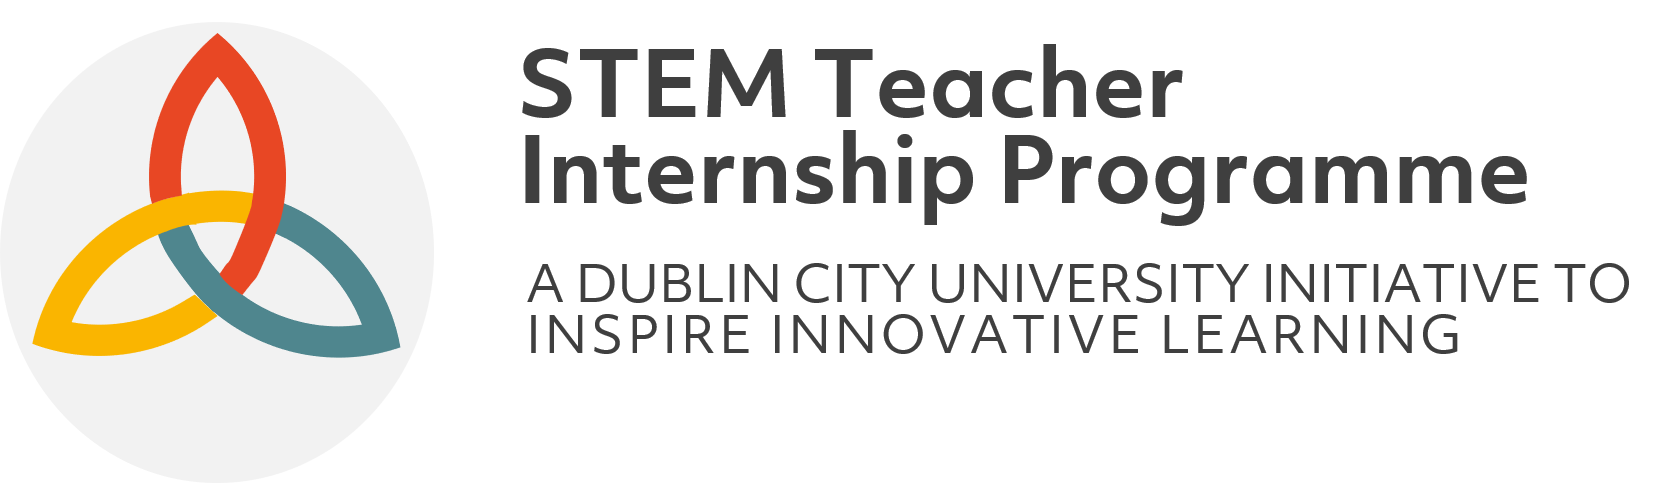 STEM Teacher Internship Programme